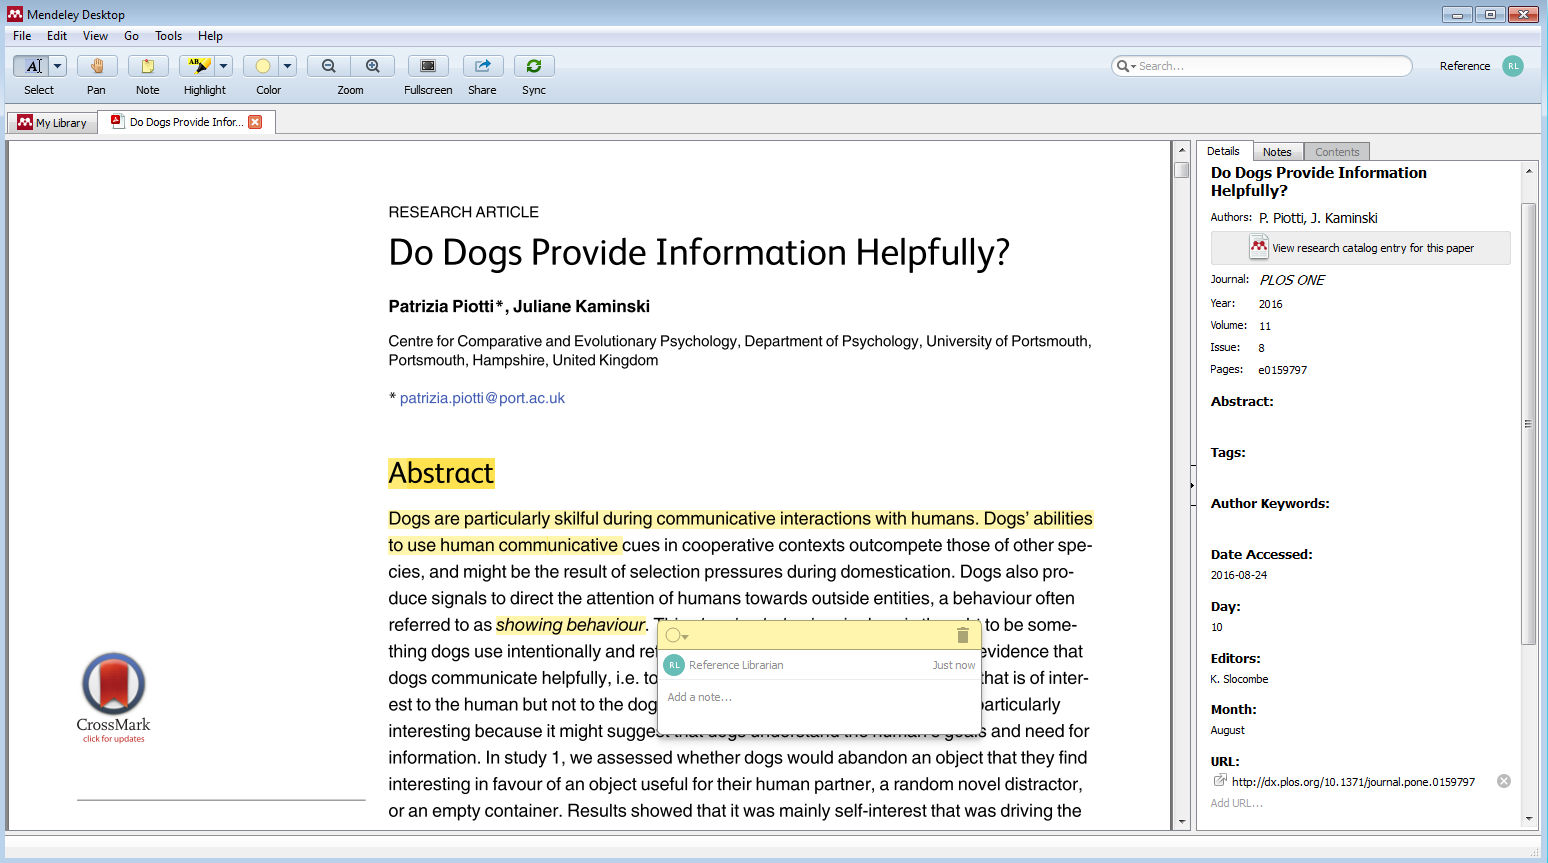 document viewer allows you to highlight